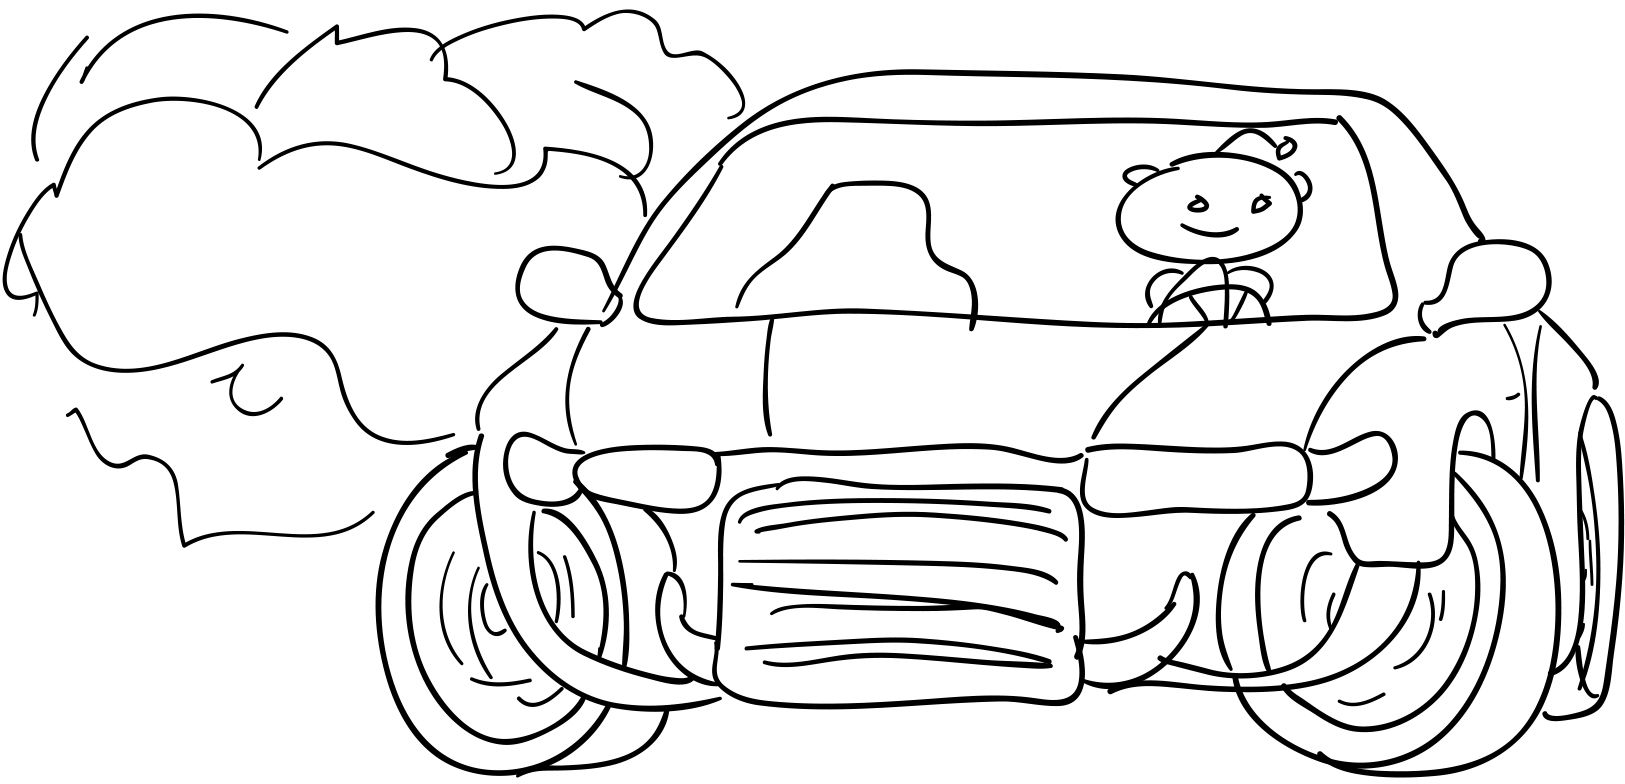 Drift clipart vector transparent Free Outline Drawing Of Drift Cars, Download Free Clip Art, Free ... vector transparent